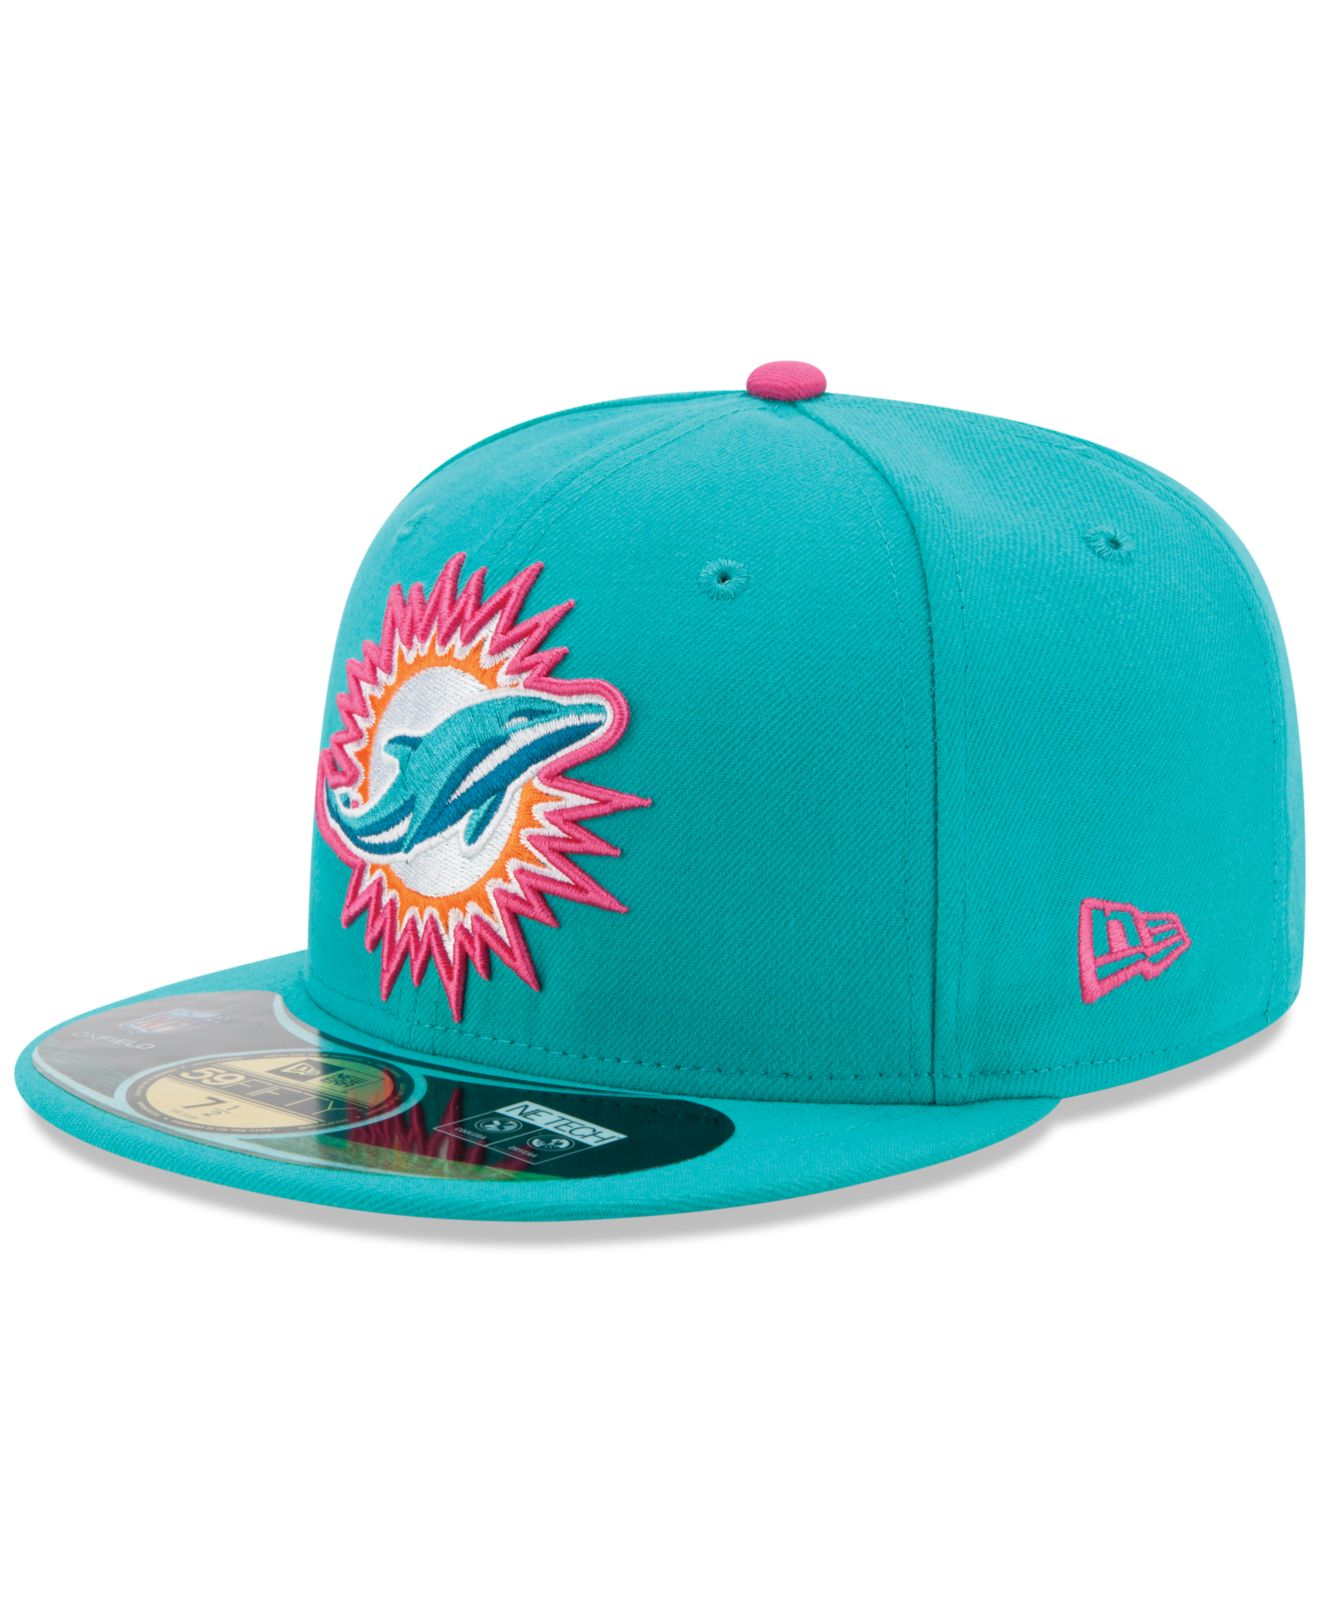 ... where to buy lyst ktz miami dolphins breast cancer awareness 59fifty  cap in blue for men authentic philadelphia eagles new era womens 2016 ... 0dc33a4fe